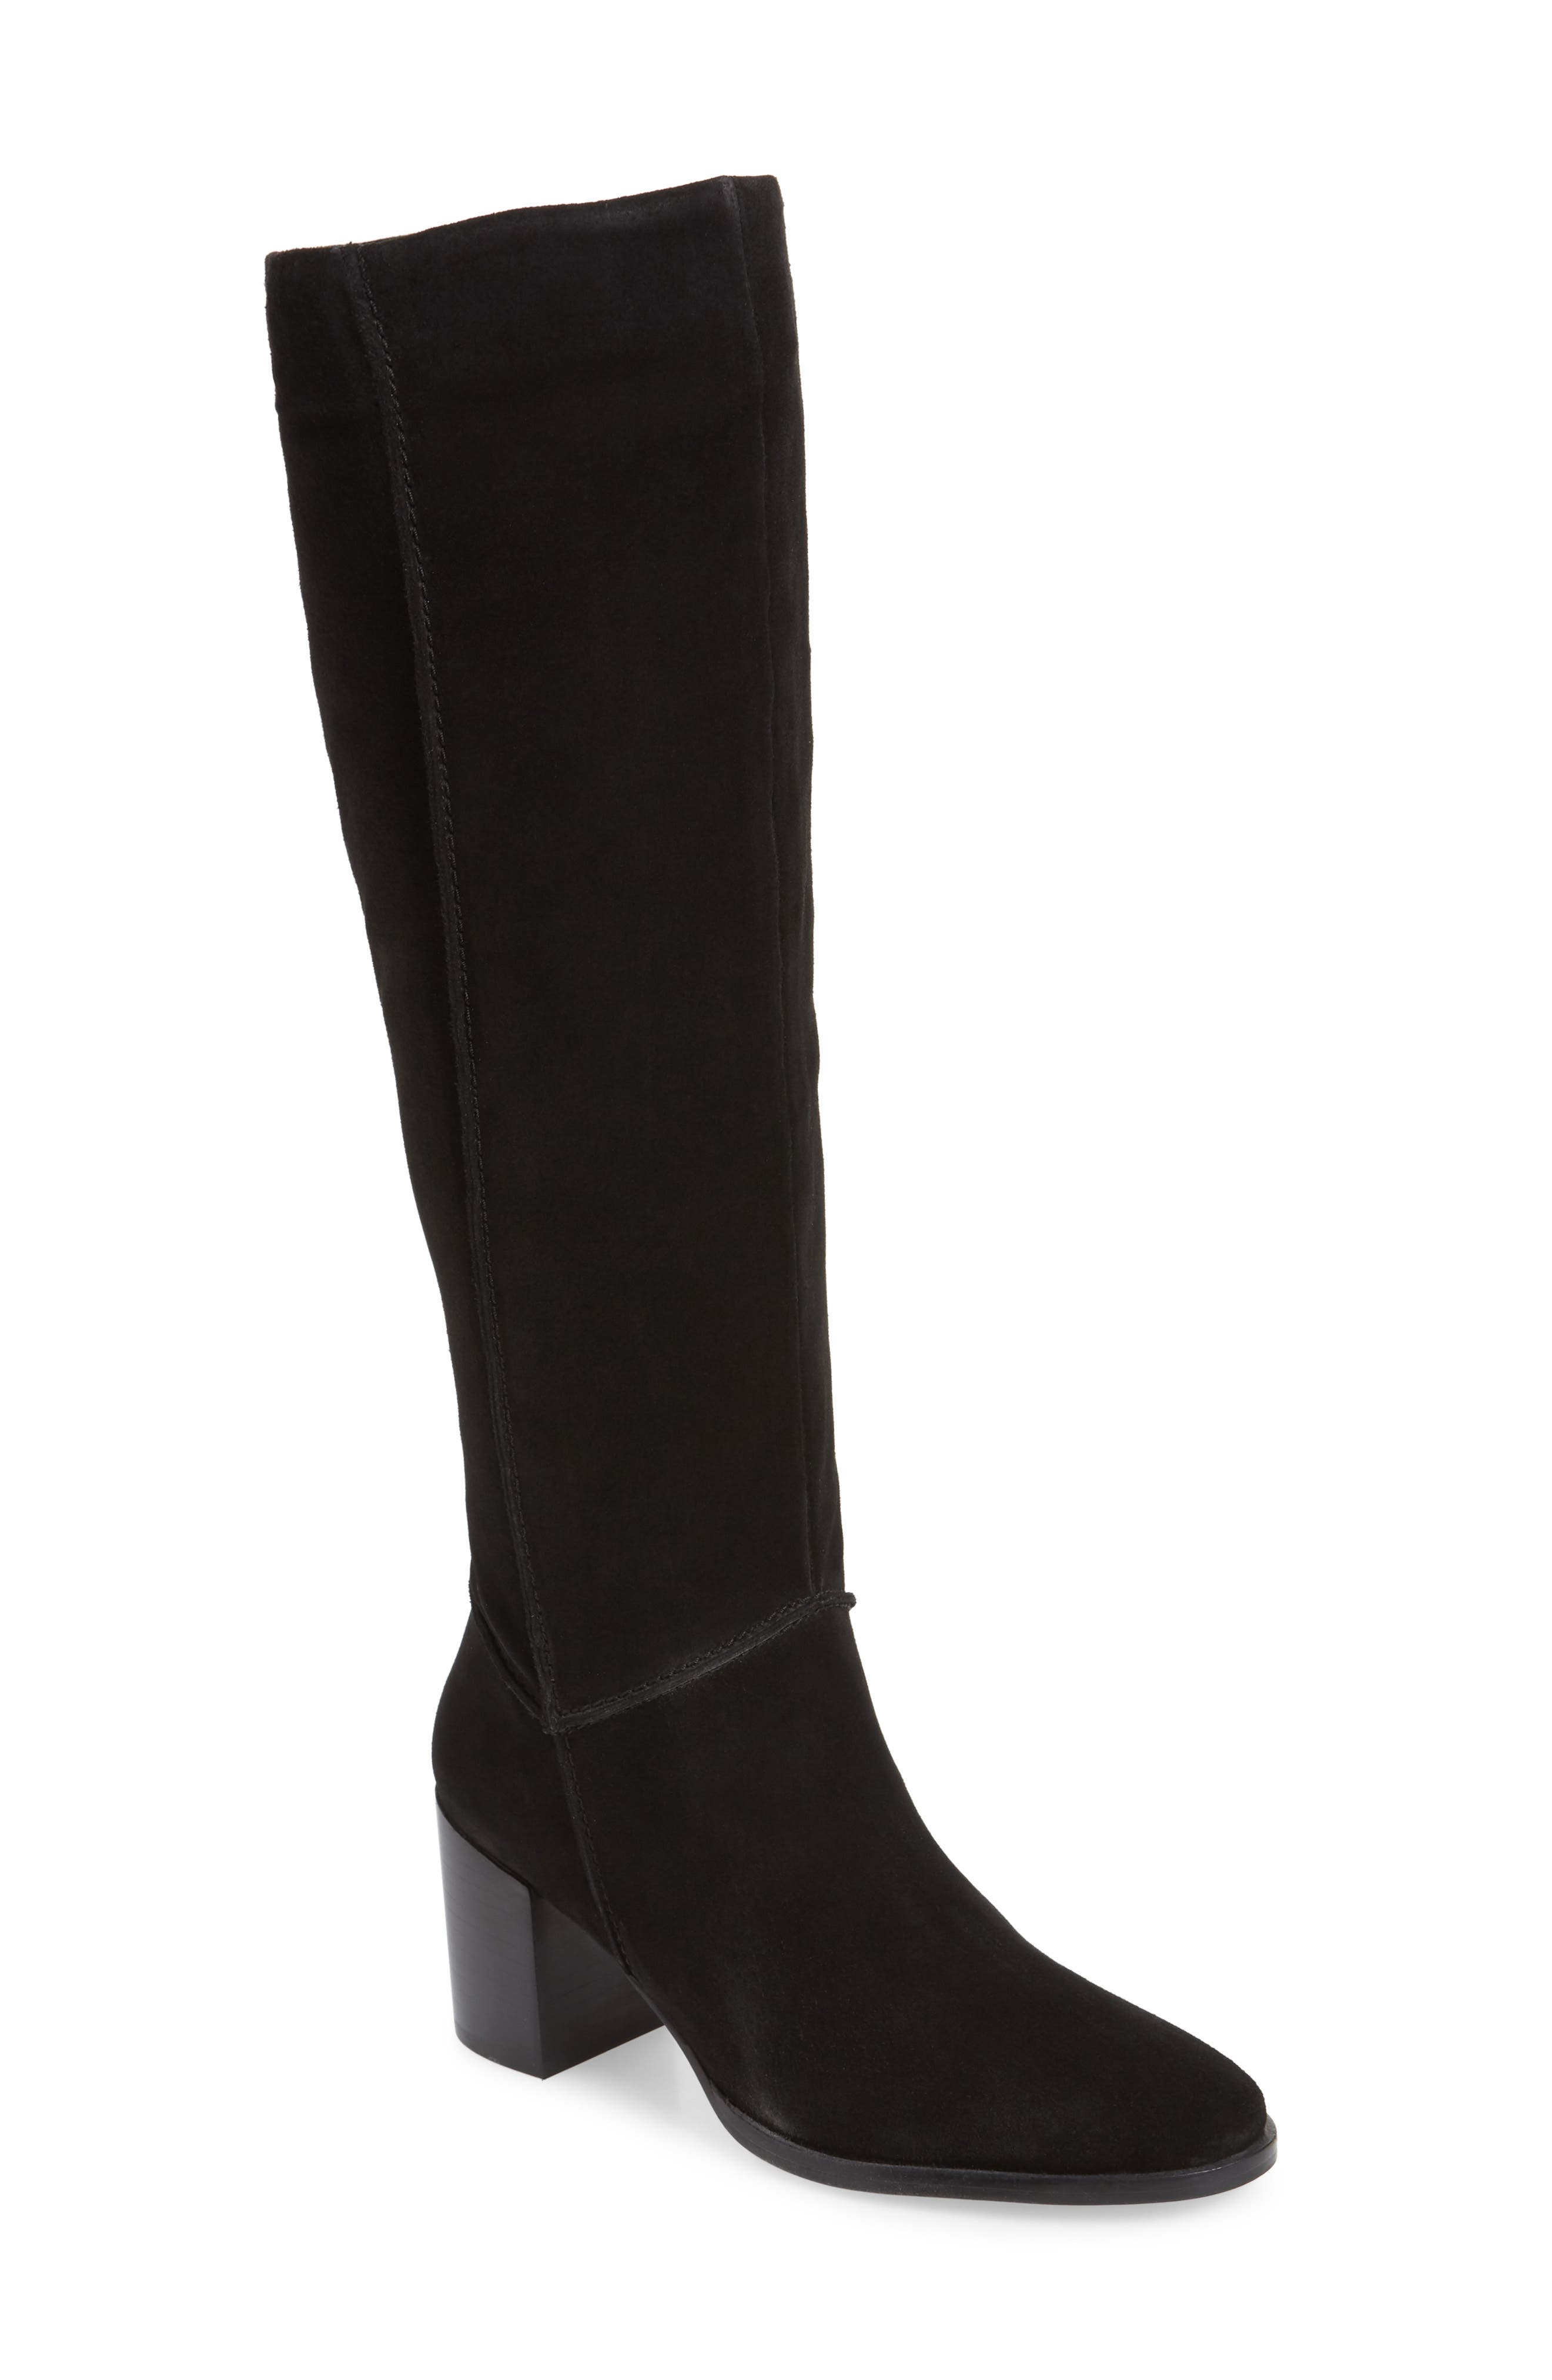 Seychelles Holloway Knee High Boot- Black